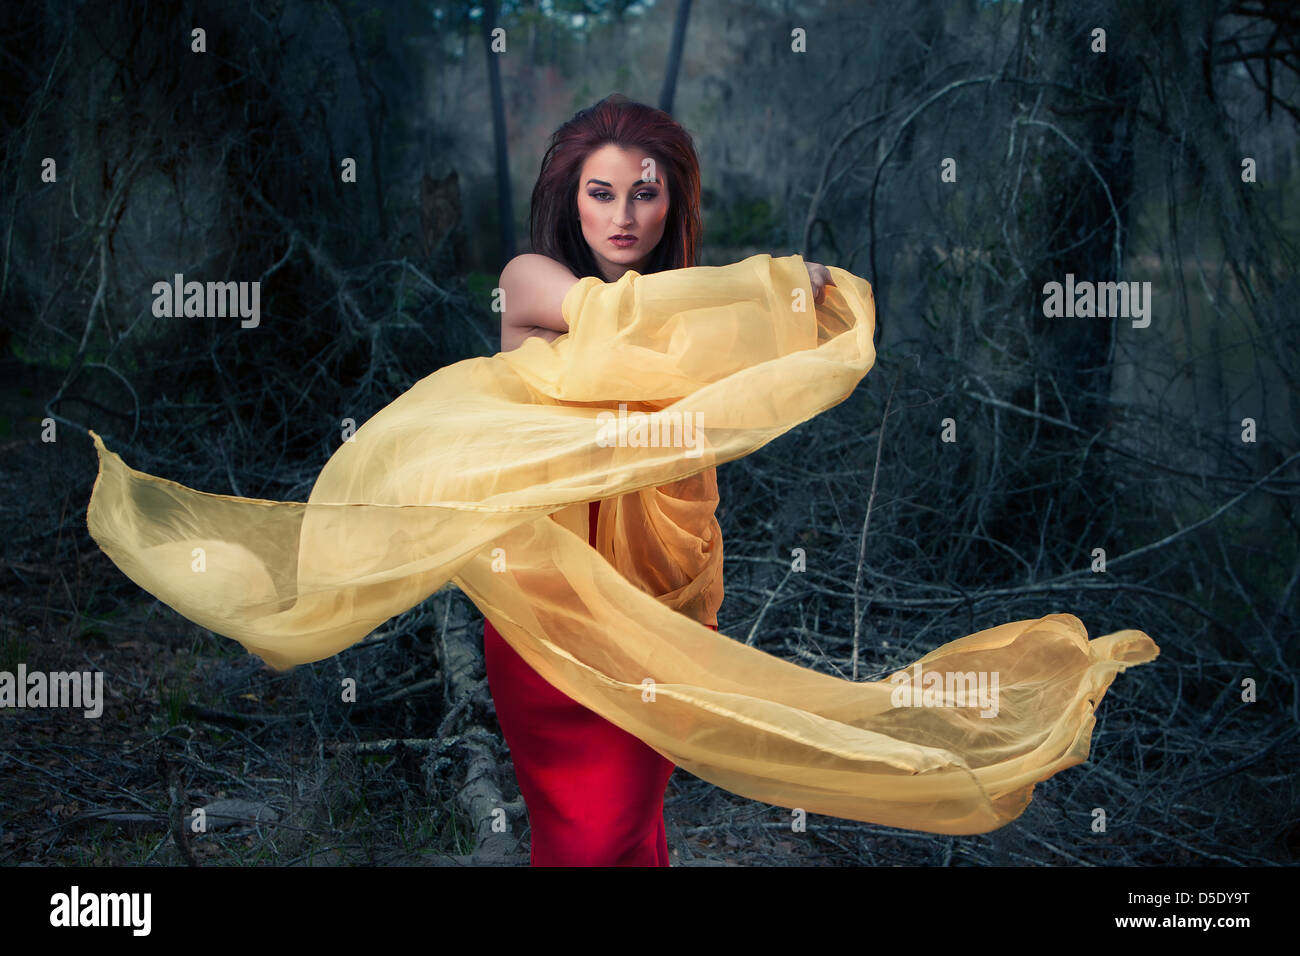 Woman swirling yellow cloth in woods - Stock Image